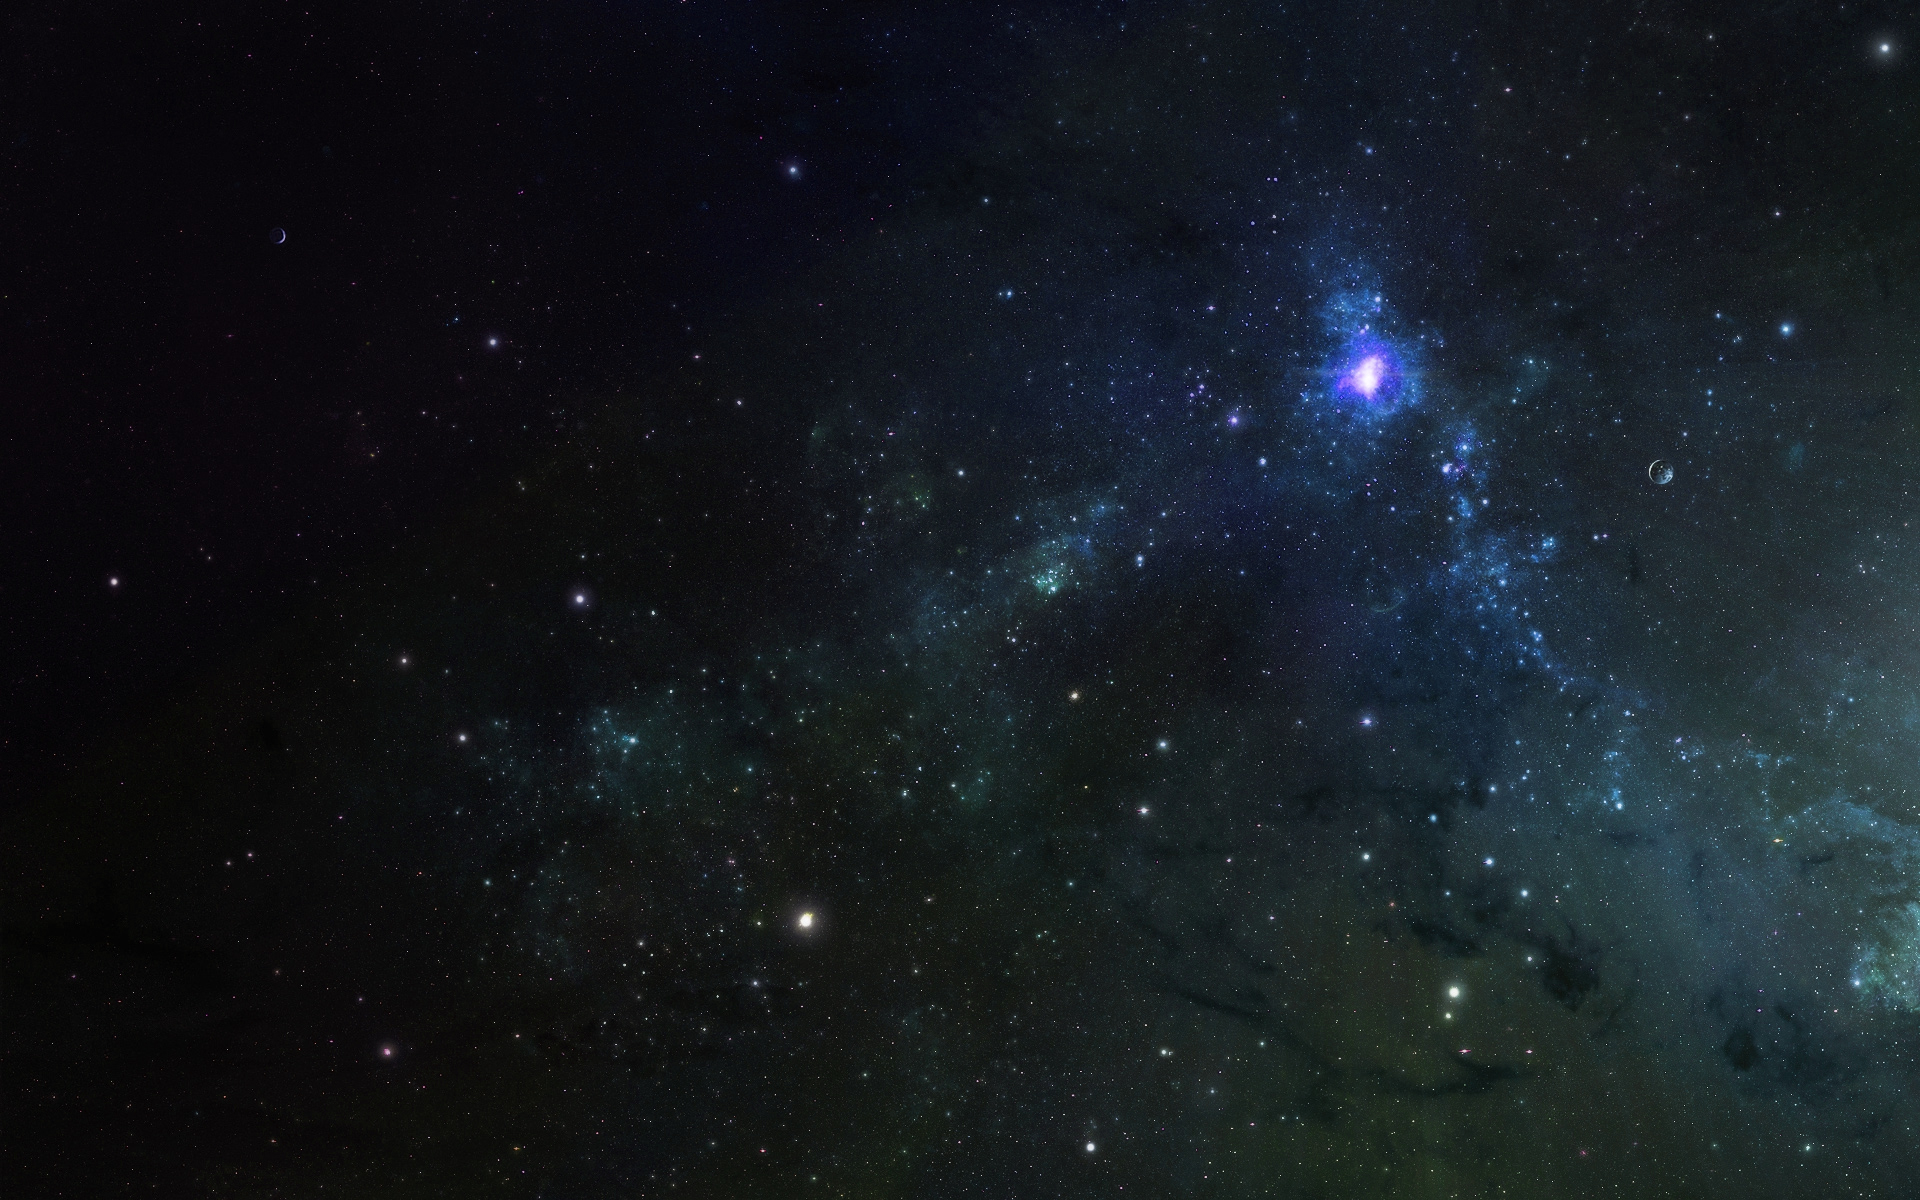 Space Hd Wallpaper Background Image 1920x1200 Id77312